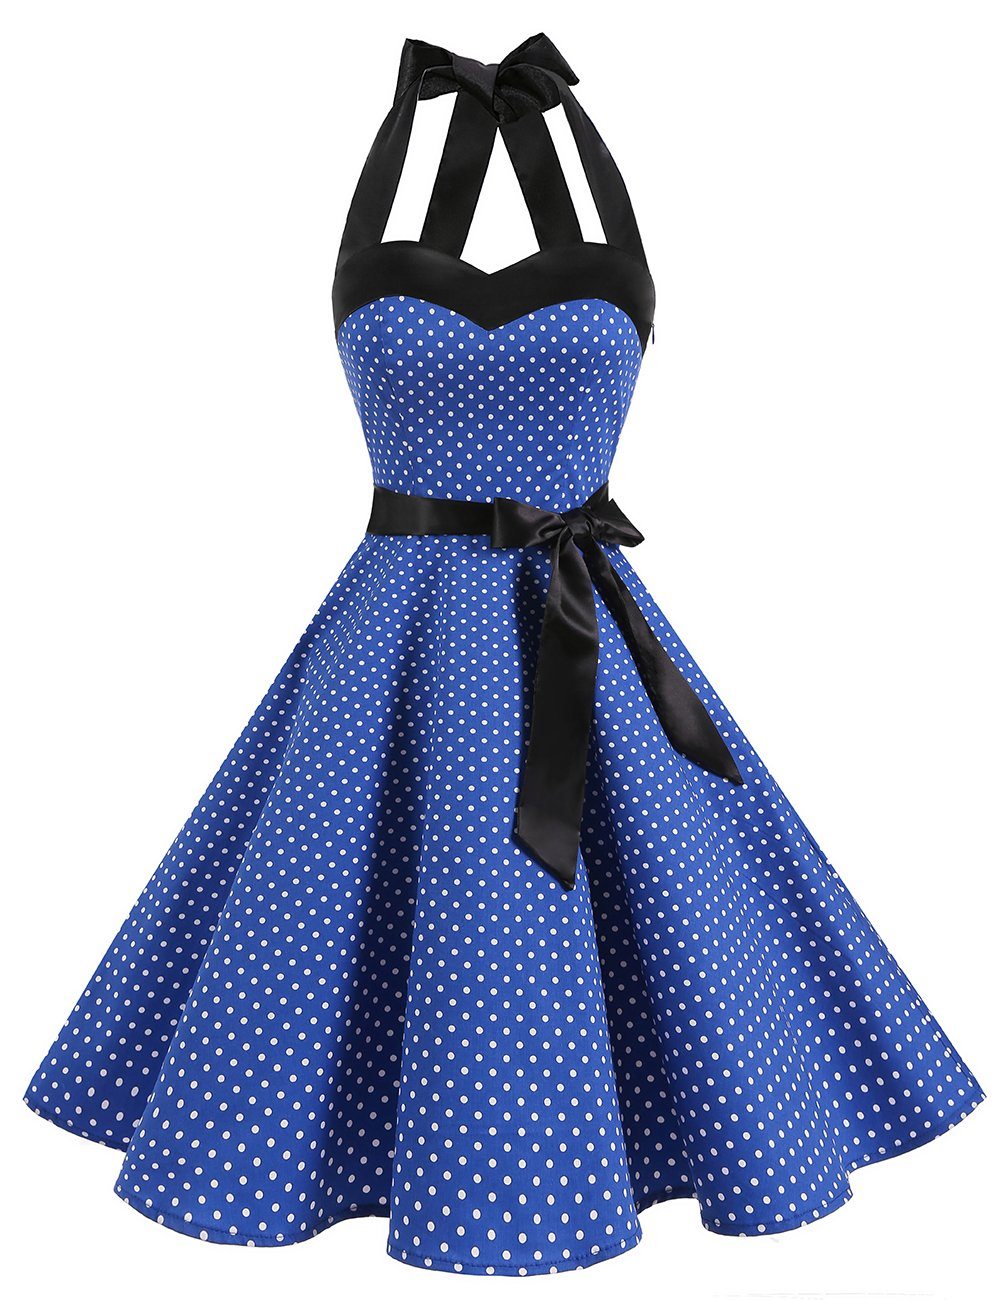 Available at Amazon: DRESSTELLS Vintage 1950s Rockabilly Polka Dots Audrey Dress Retro Cocktail Dress